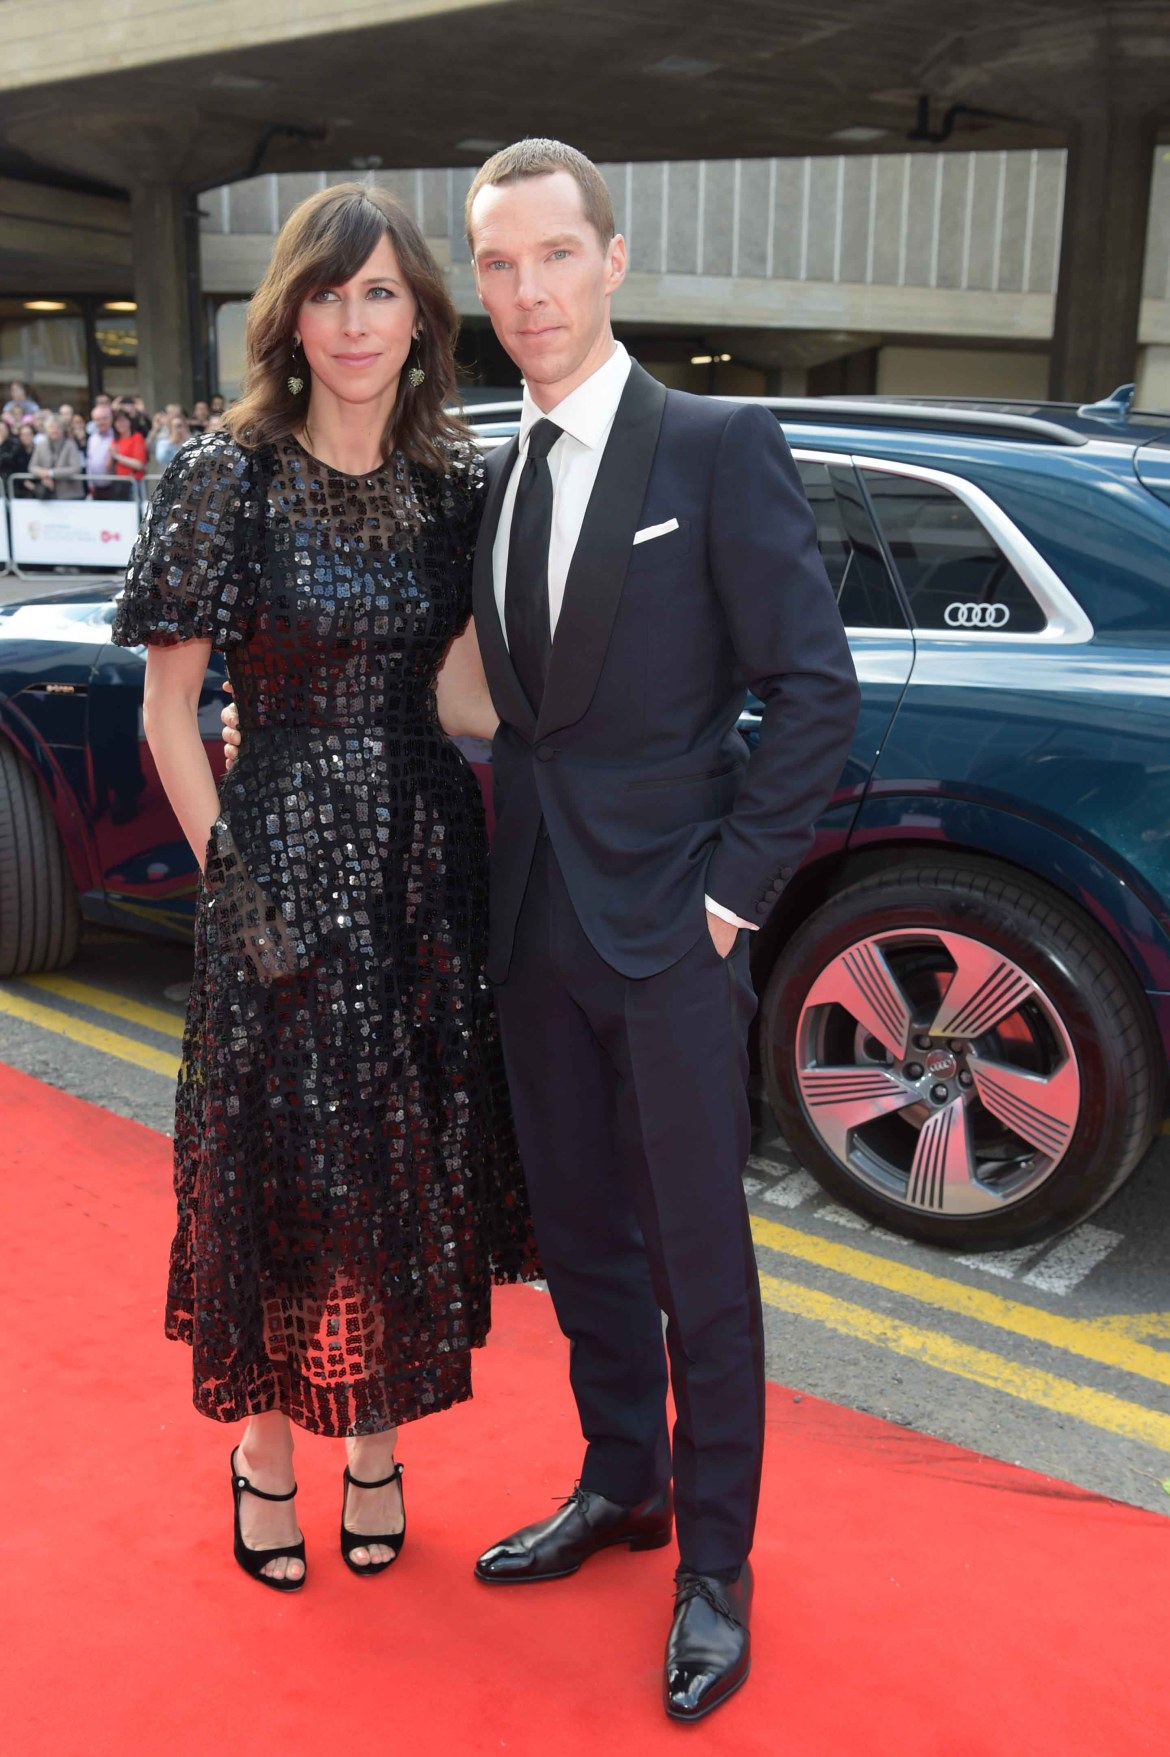 Sophie hunter & benedict cumberbatch arrive in an audi e tron at the virgin media british academy television awards at the royal festival hall, london, sunday 12 may 2019 (2)